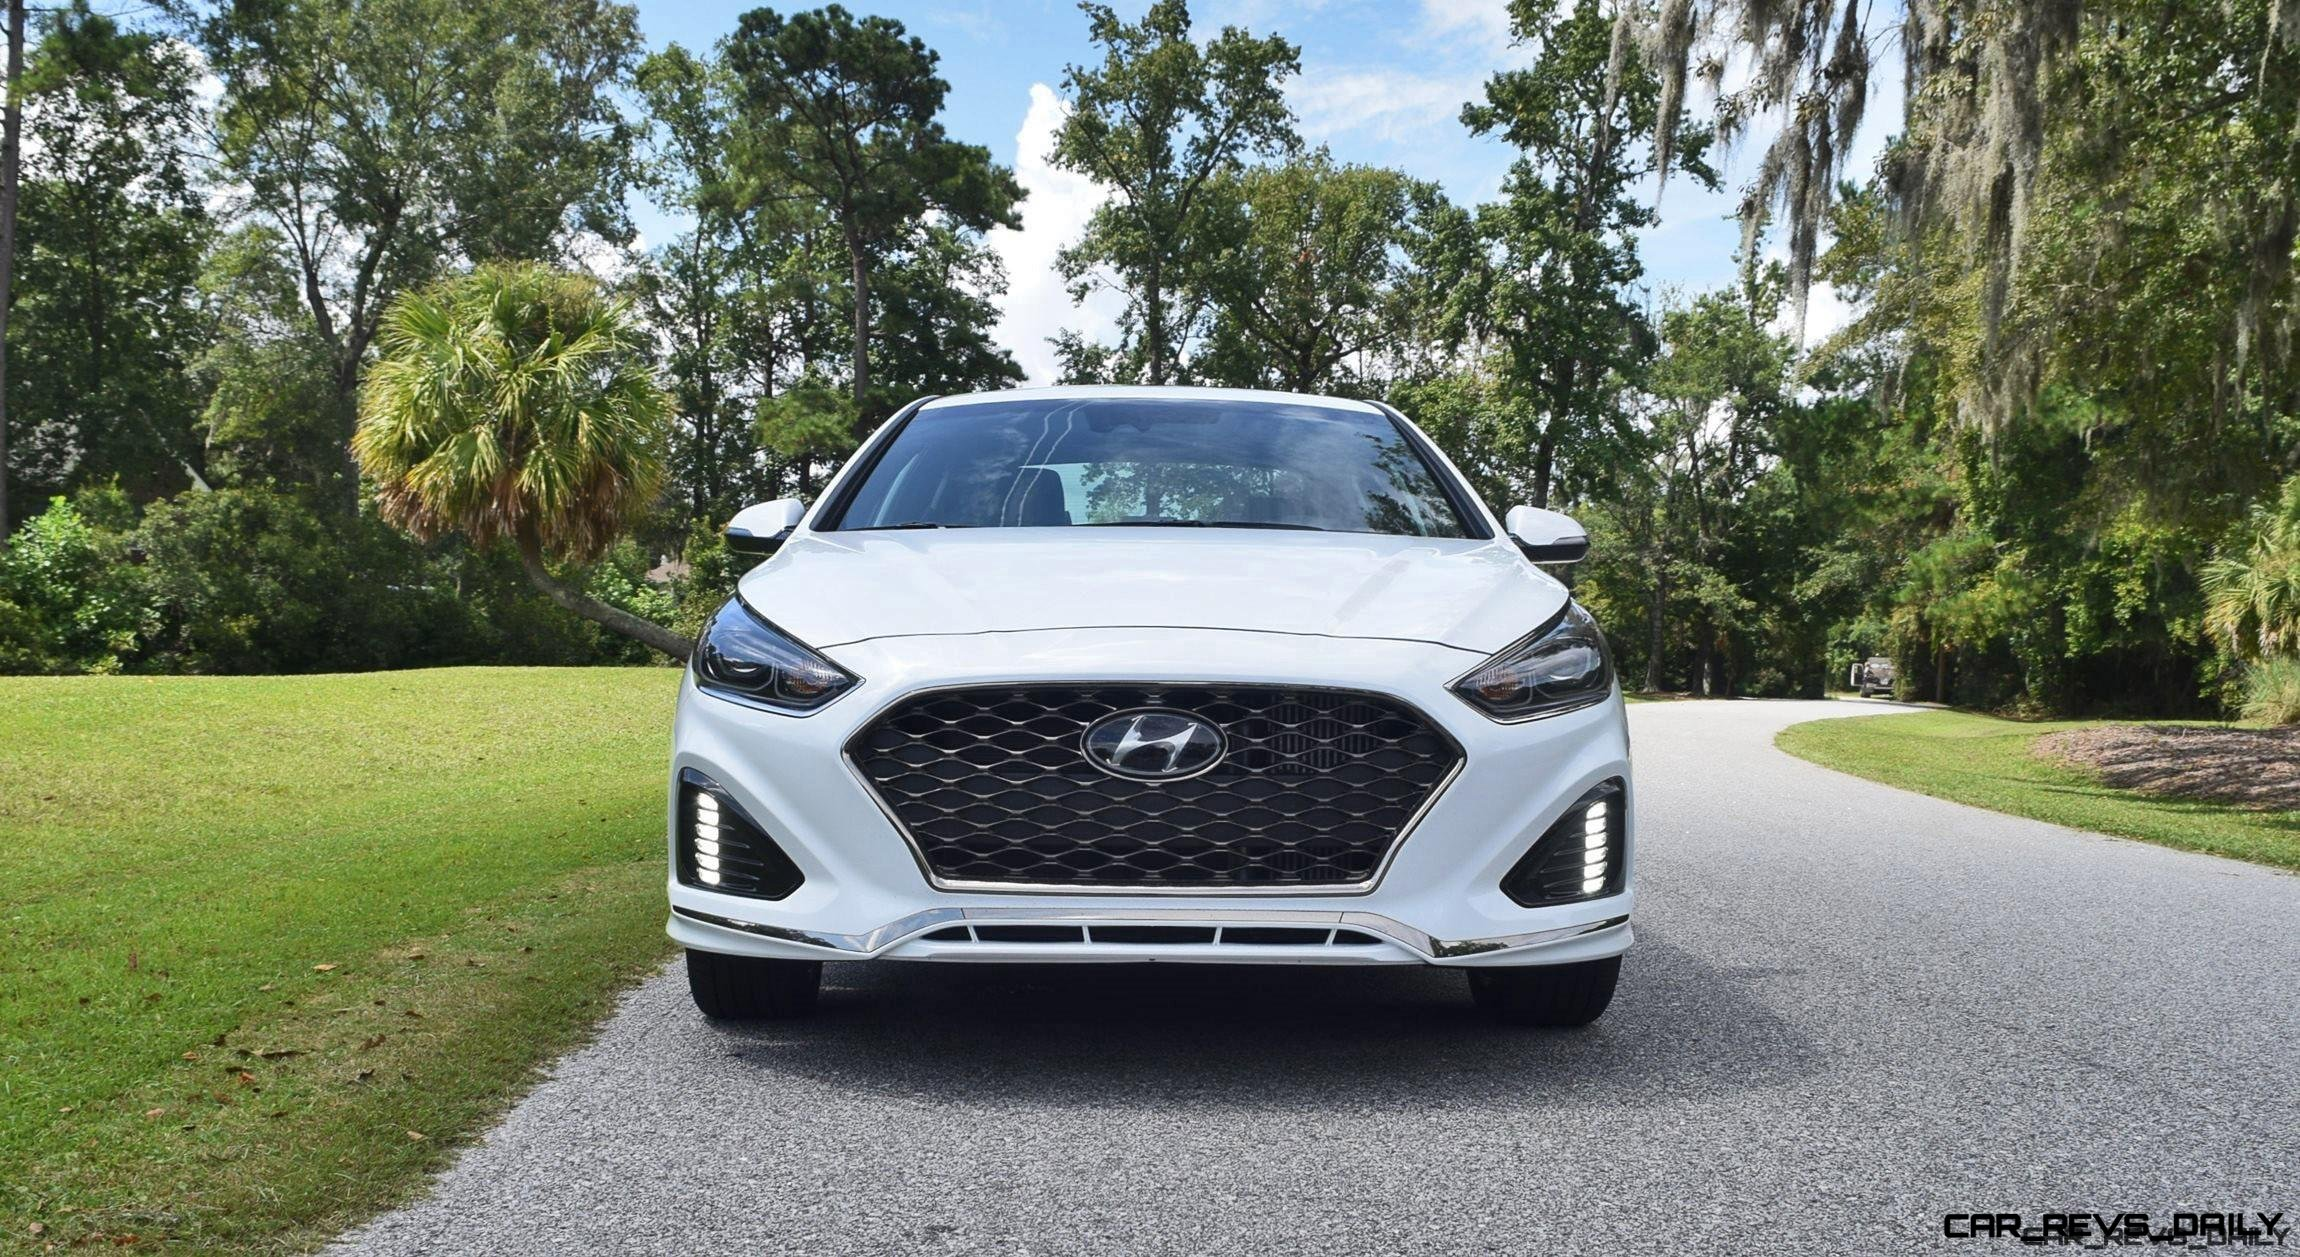 2018 Hyundai Sonata 2 0T - First Drive Review w/ Video » CAR